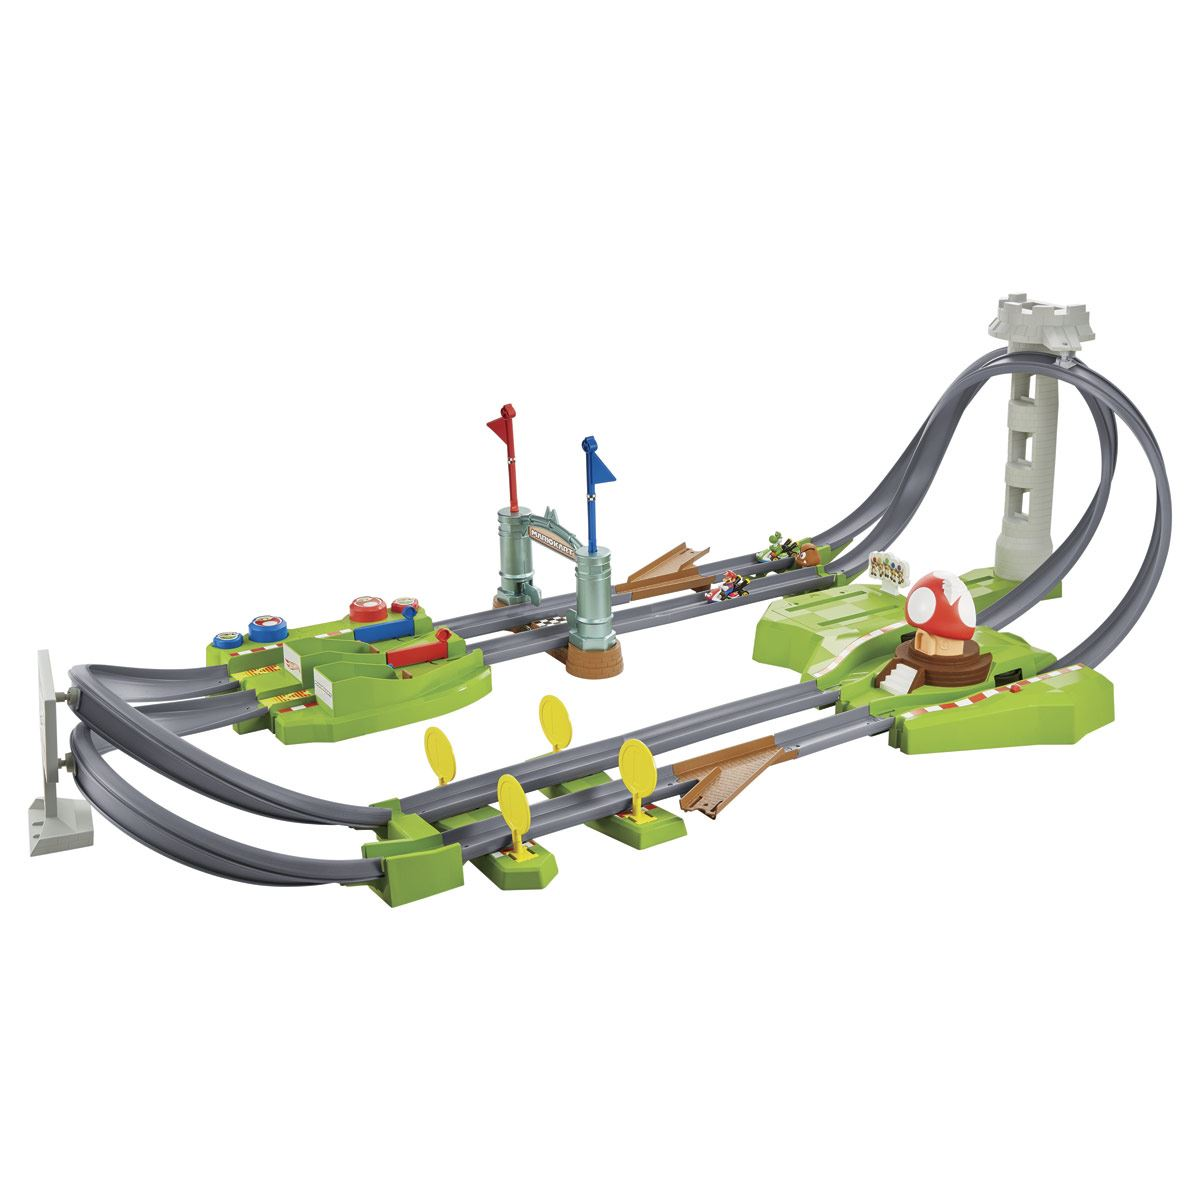 Hot Wheels Mario Kart Pista De Circuito Largo